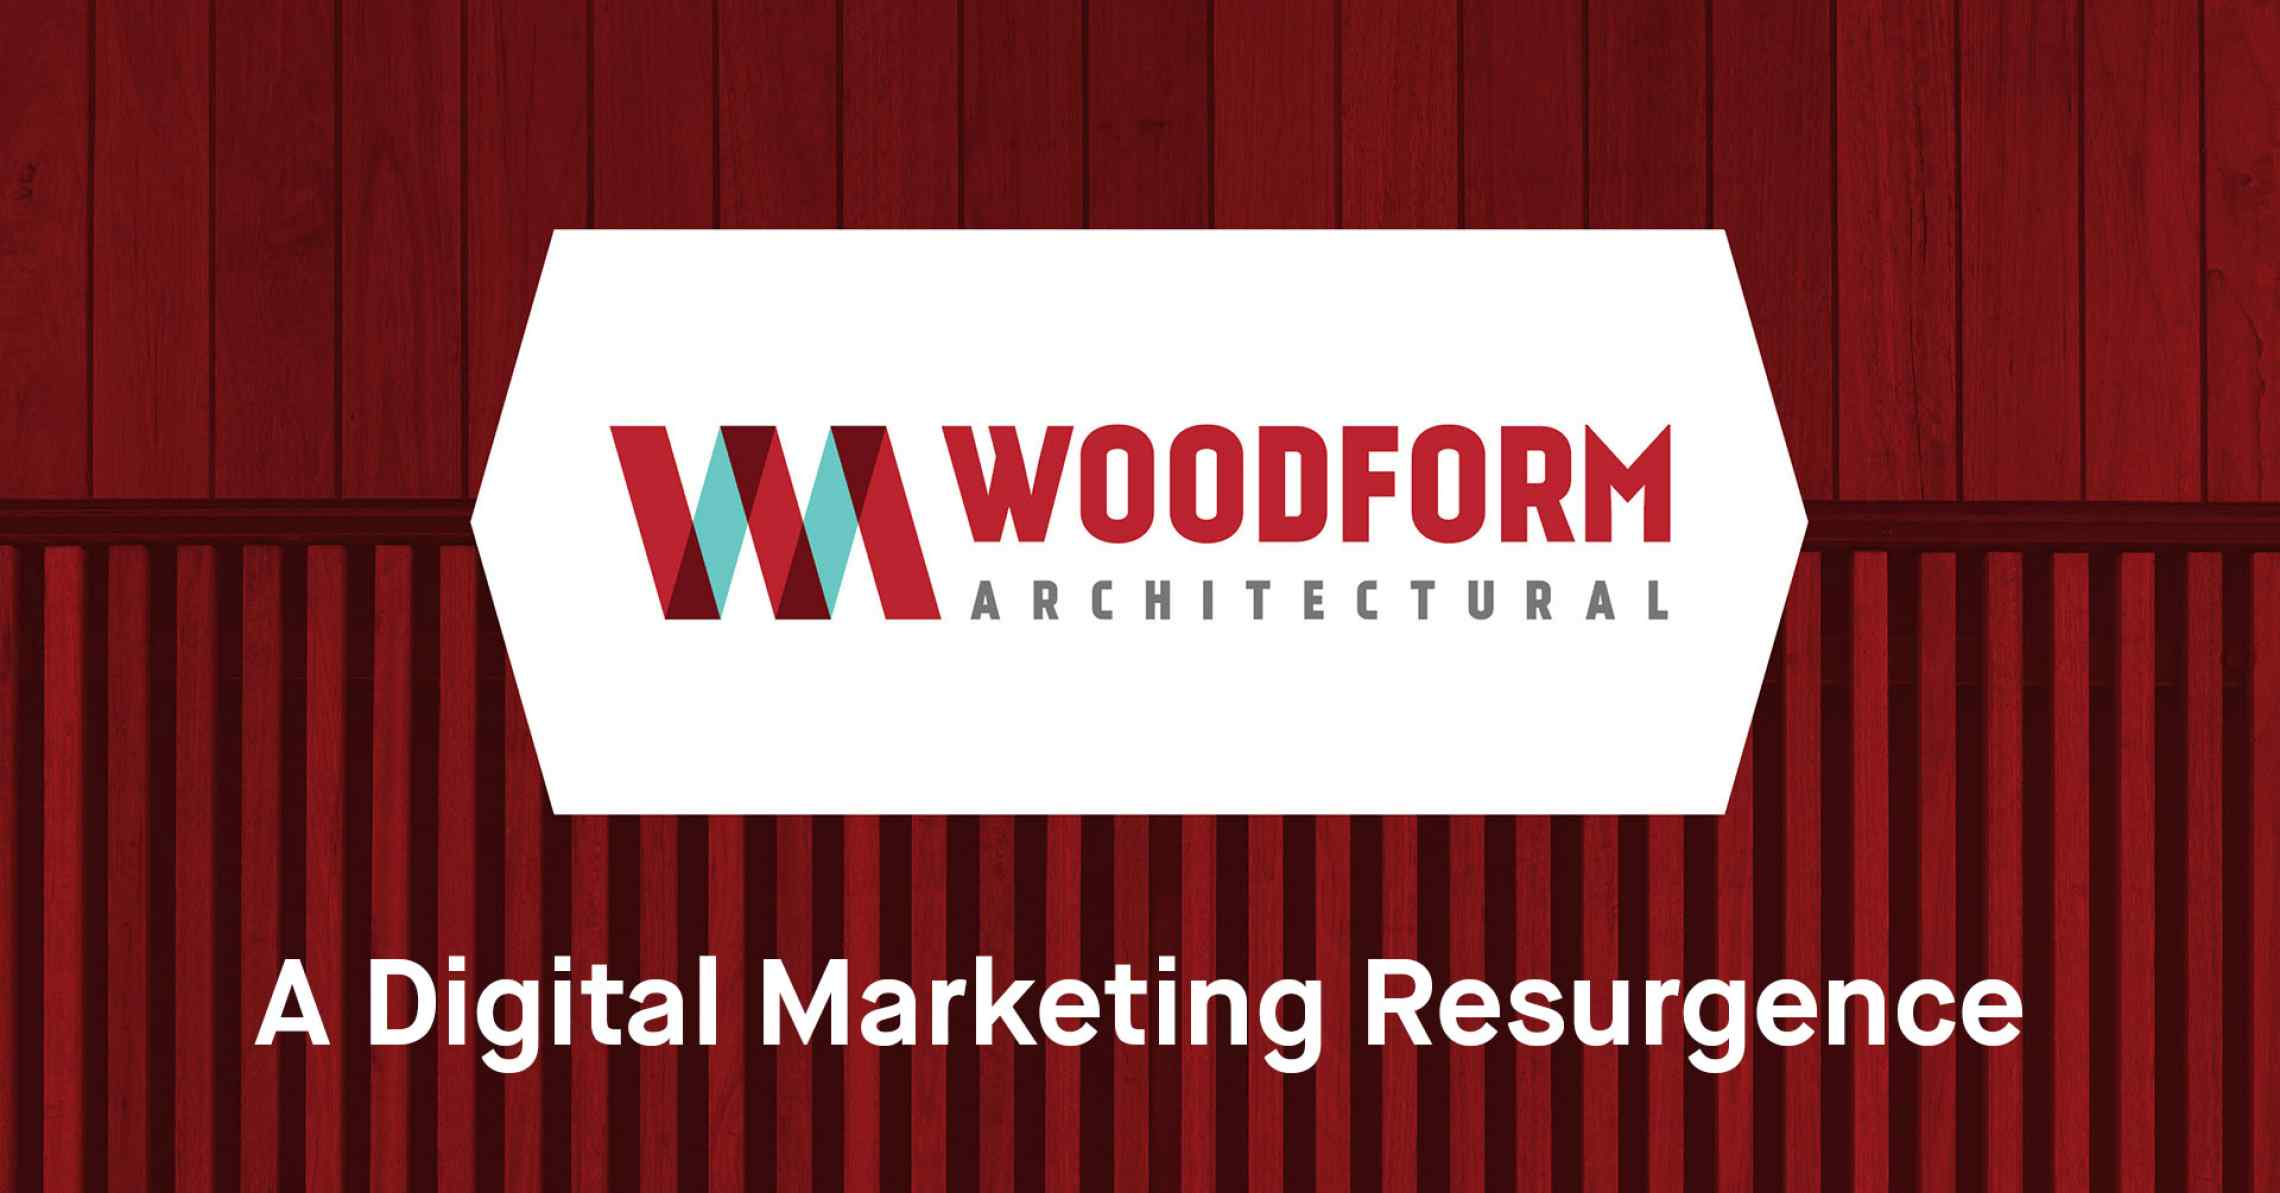 Woodform Architectural Makes Stunning Resurgence Via Digital Marketing